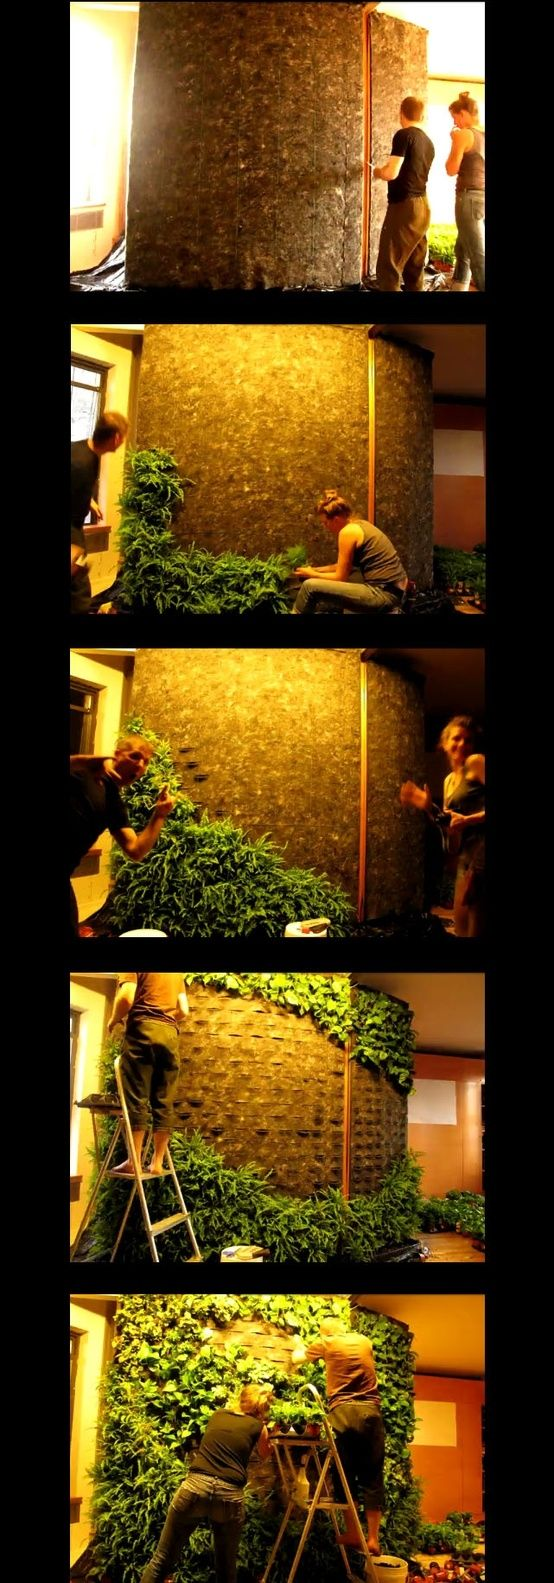 598 best Vertical Garden images on Pinterest | Green walls, Vertical ...